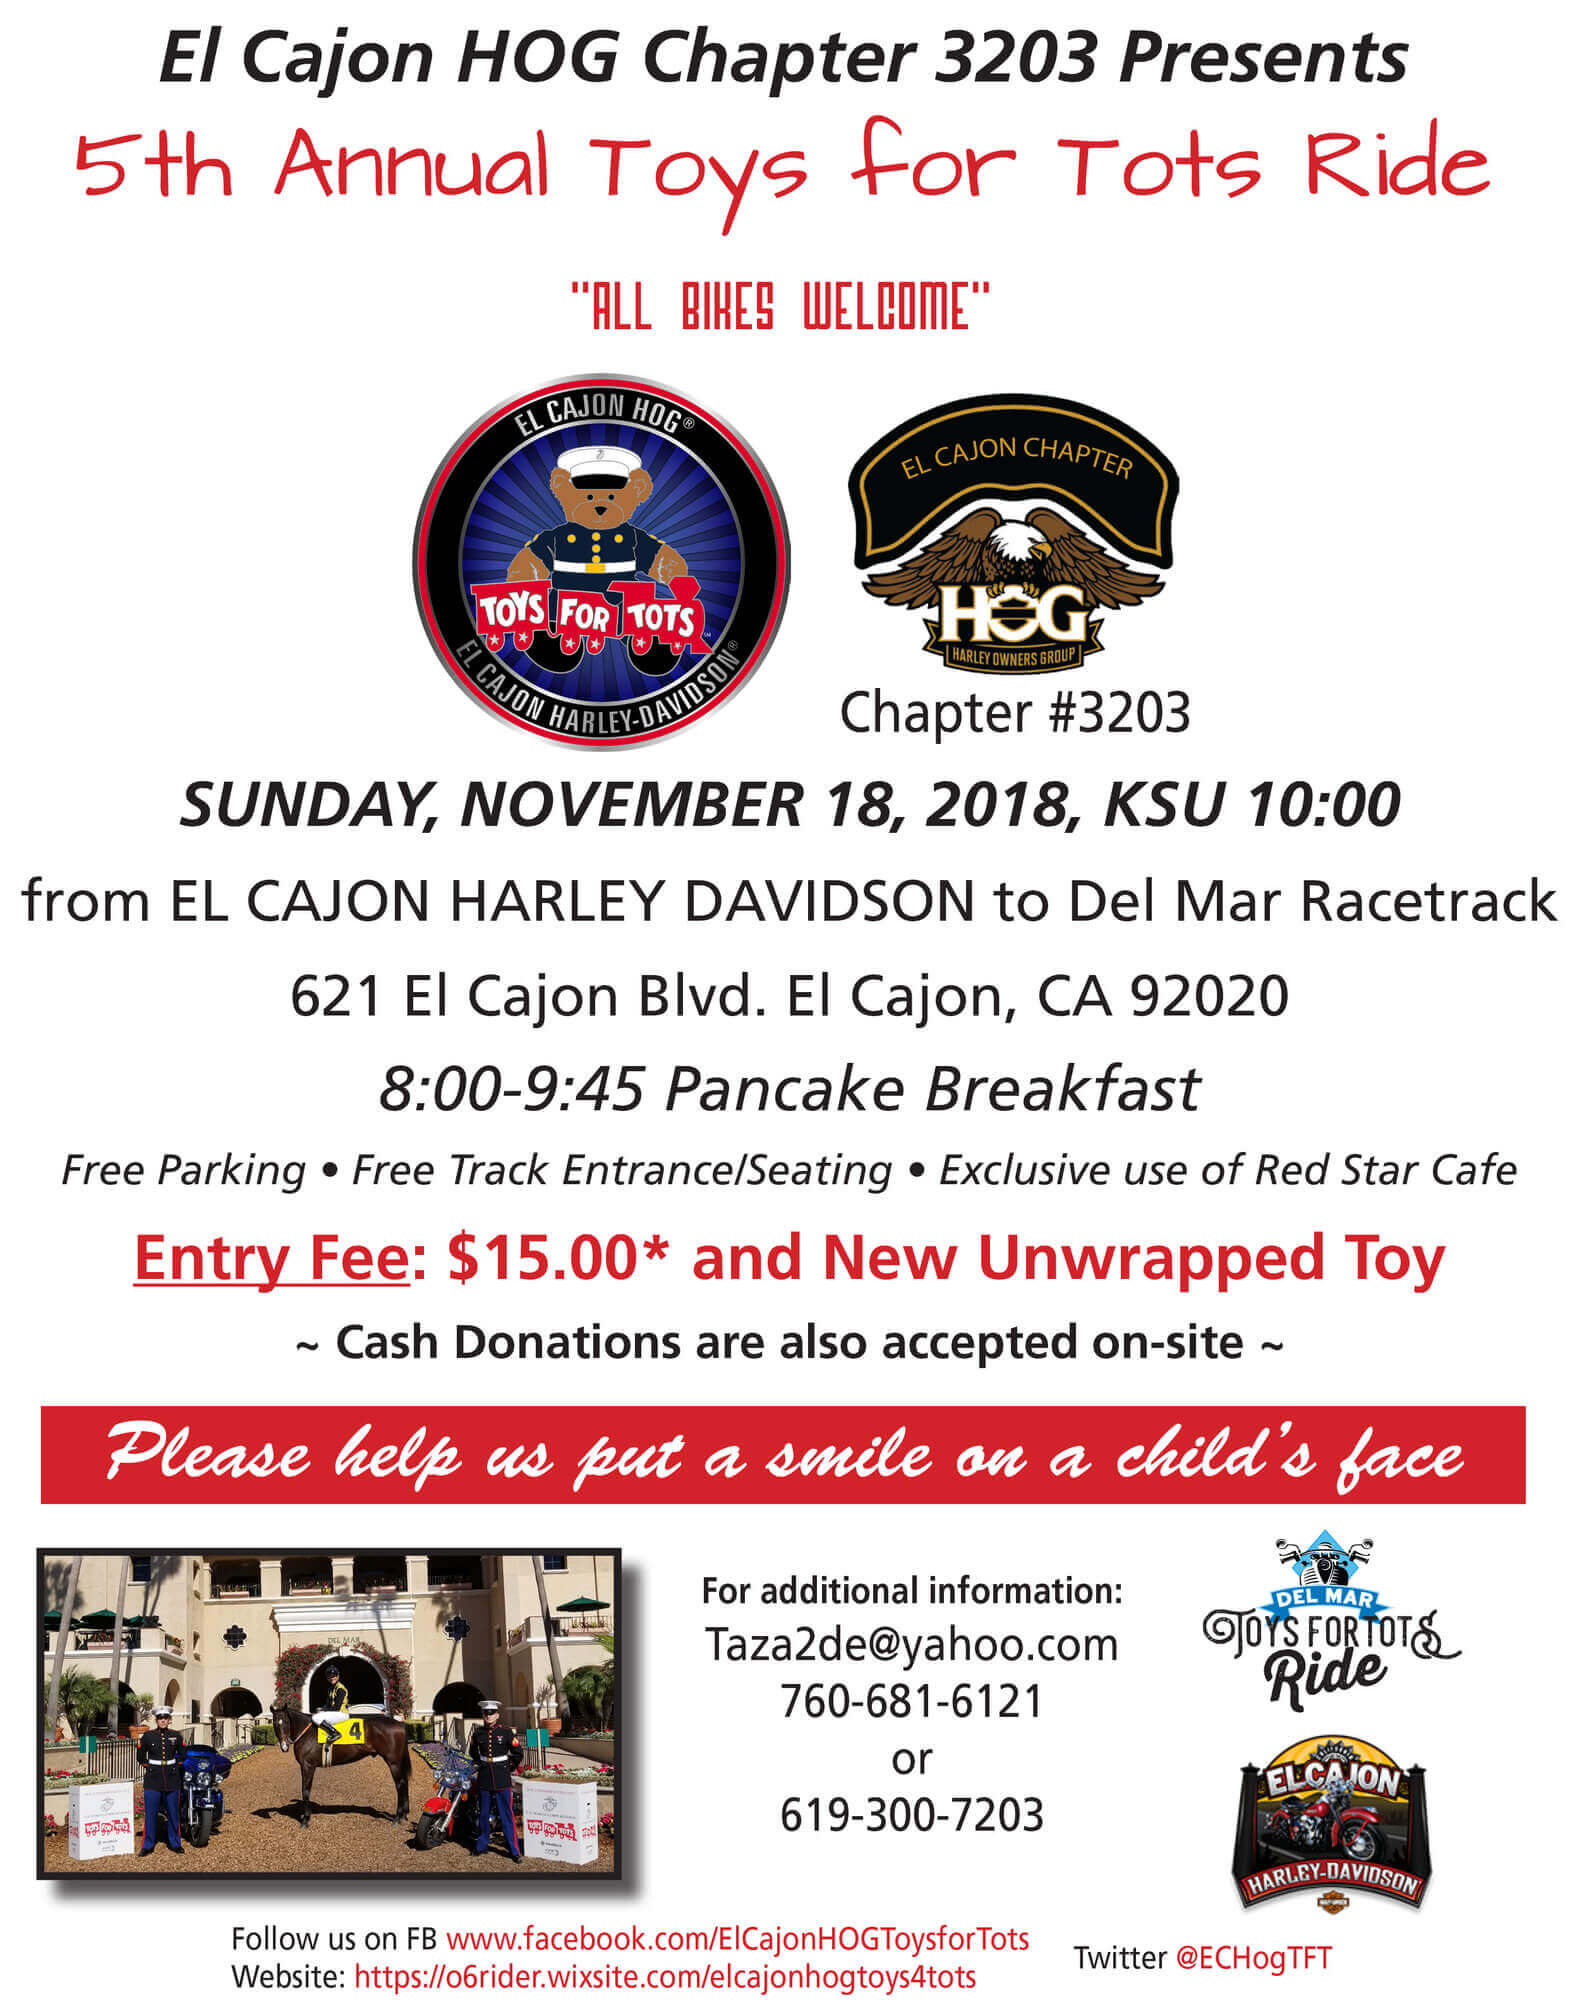 5th Annual Toys For Tots Ride